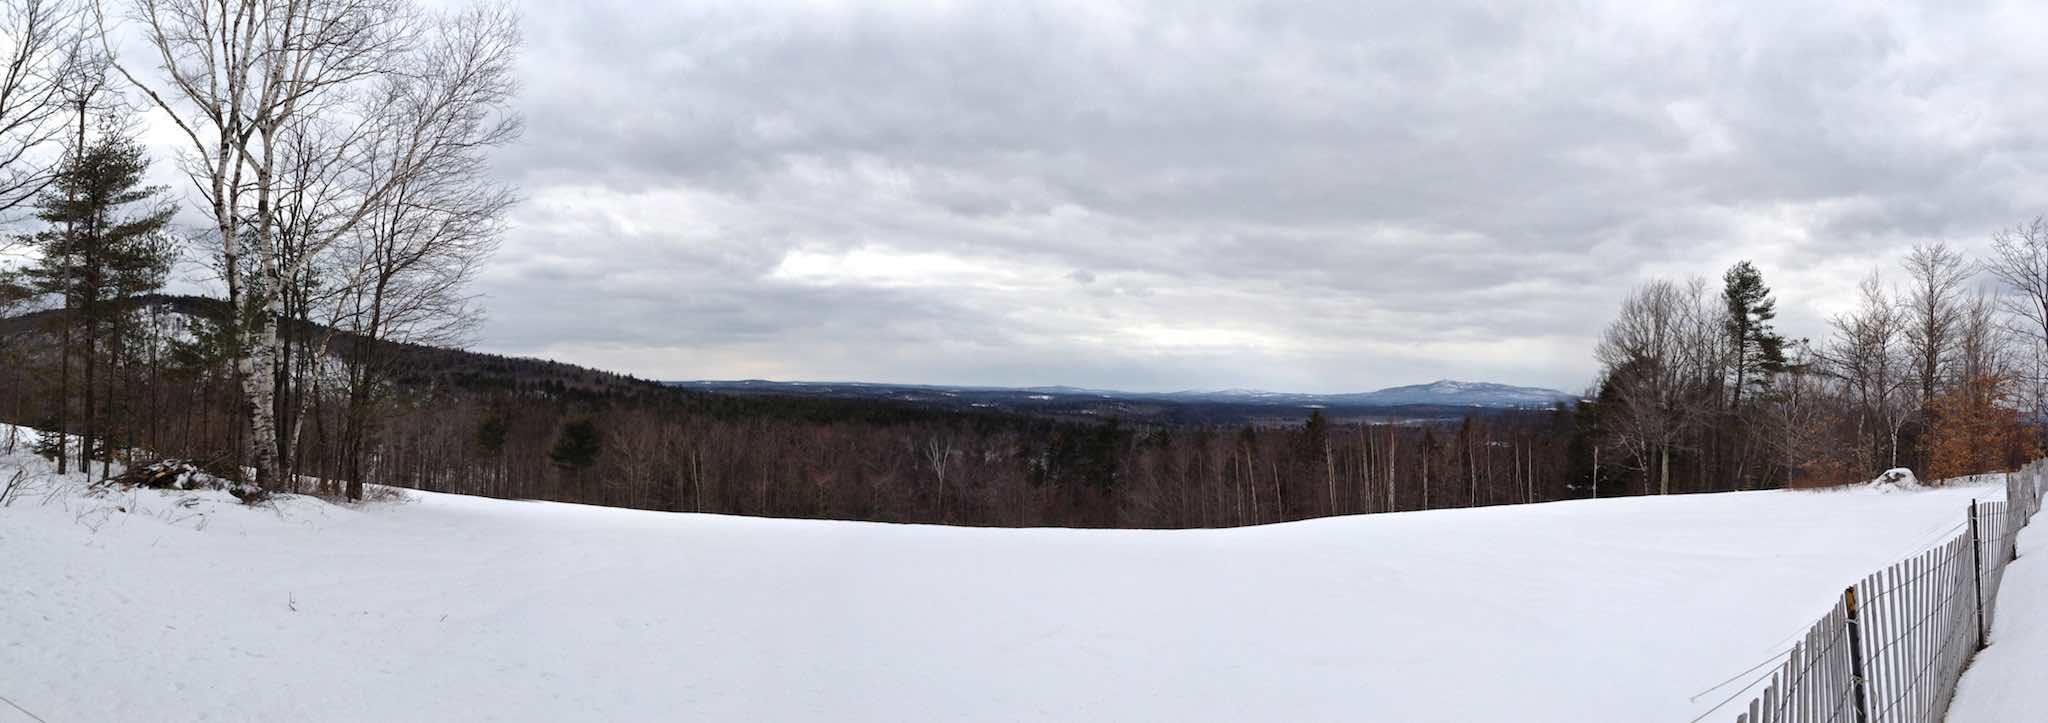 View from Windblown